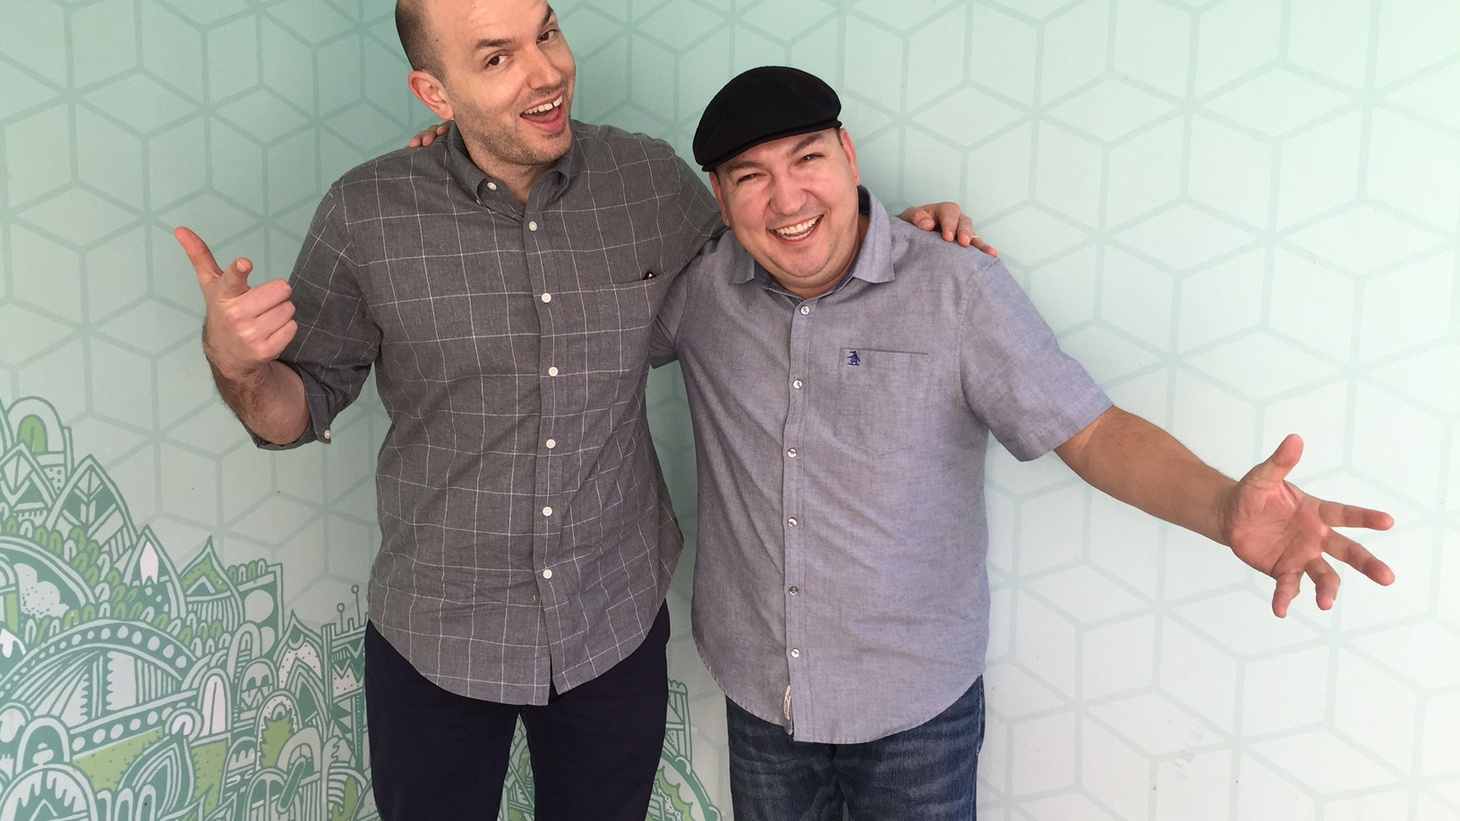 Paul Scheer relates to Weezer's lovelorn lyrics, channels his inner pop diva, and shows his softer side with a dedication to his wife.